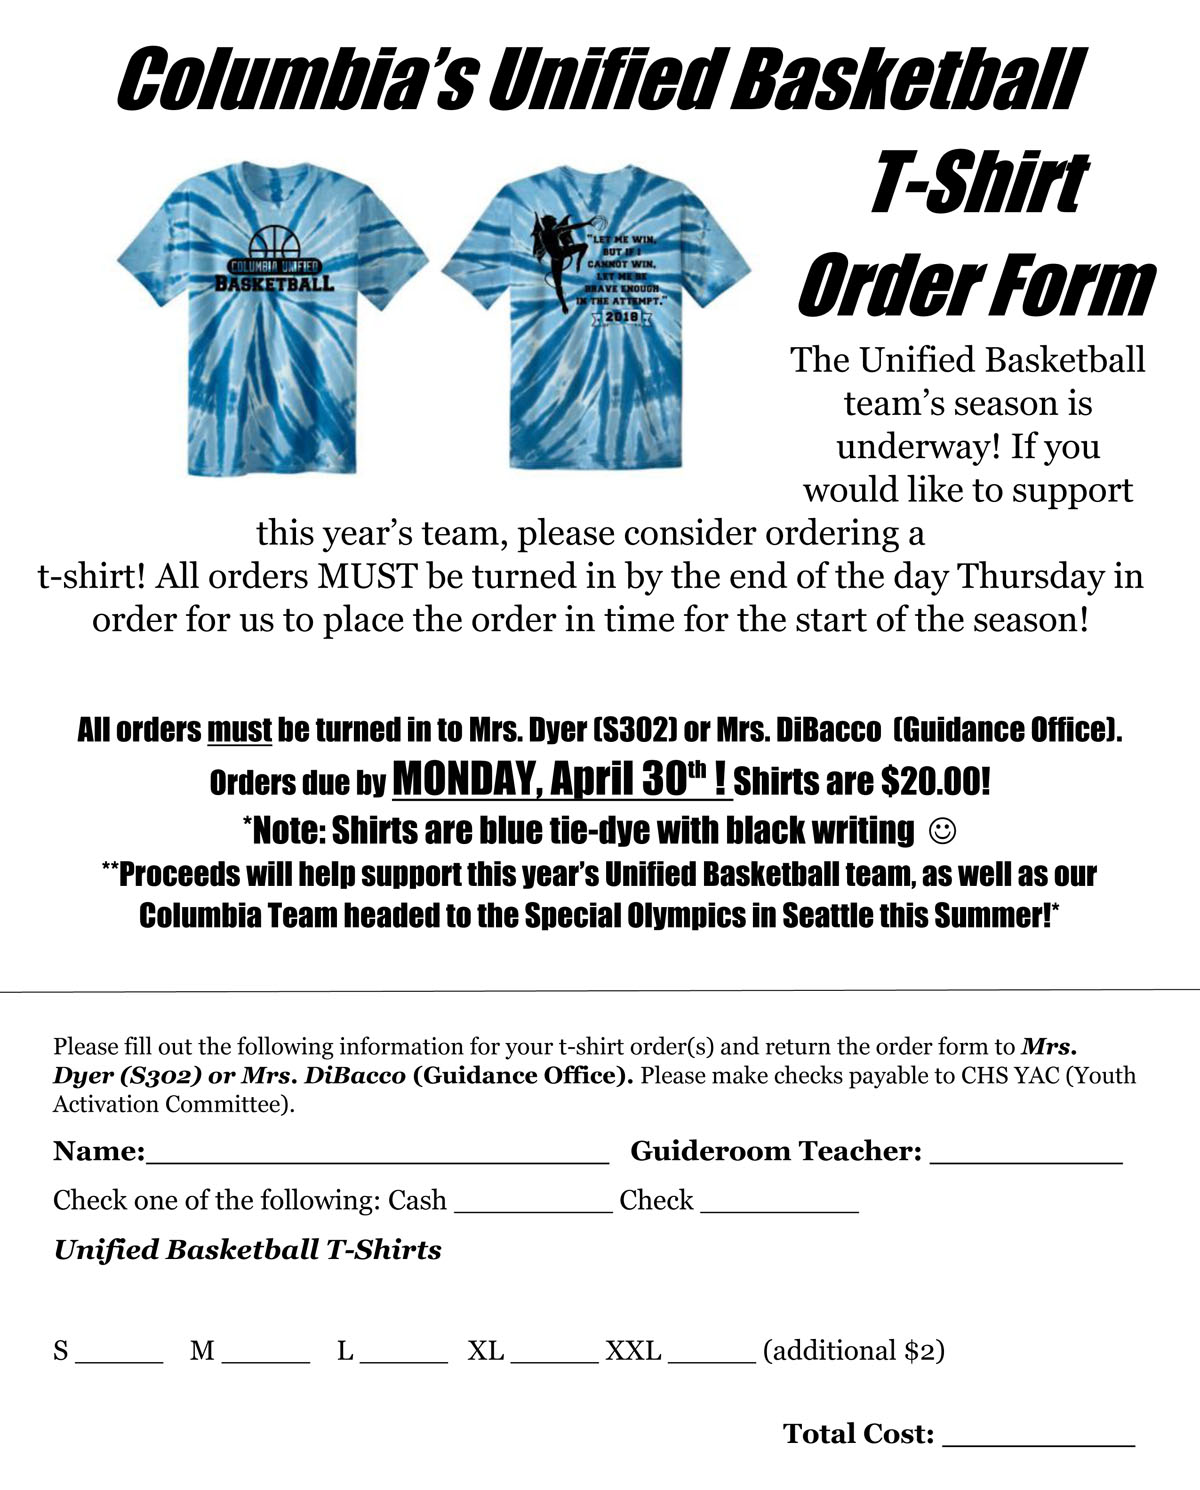 Columbia Unified Basketball shirt order form